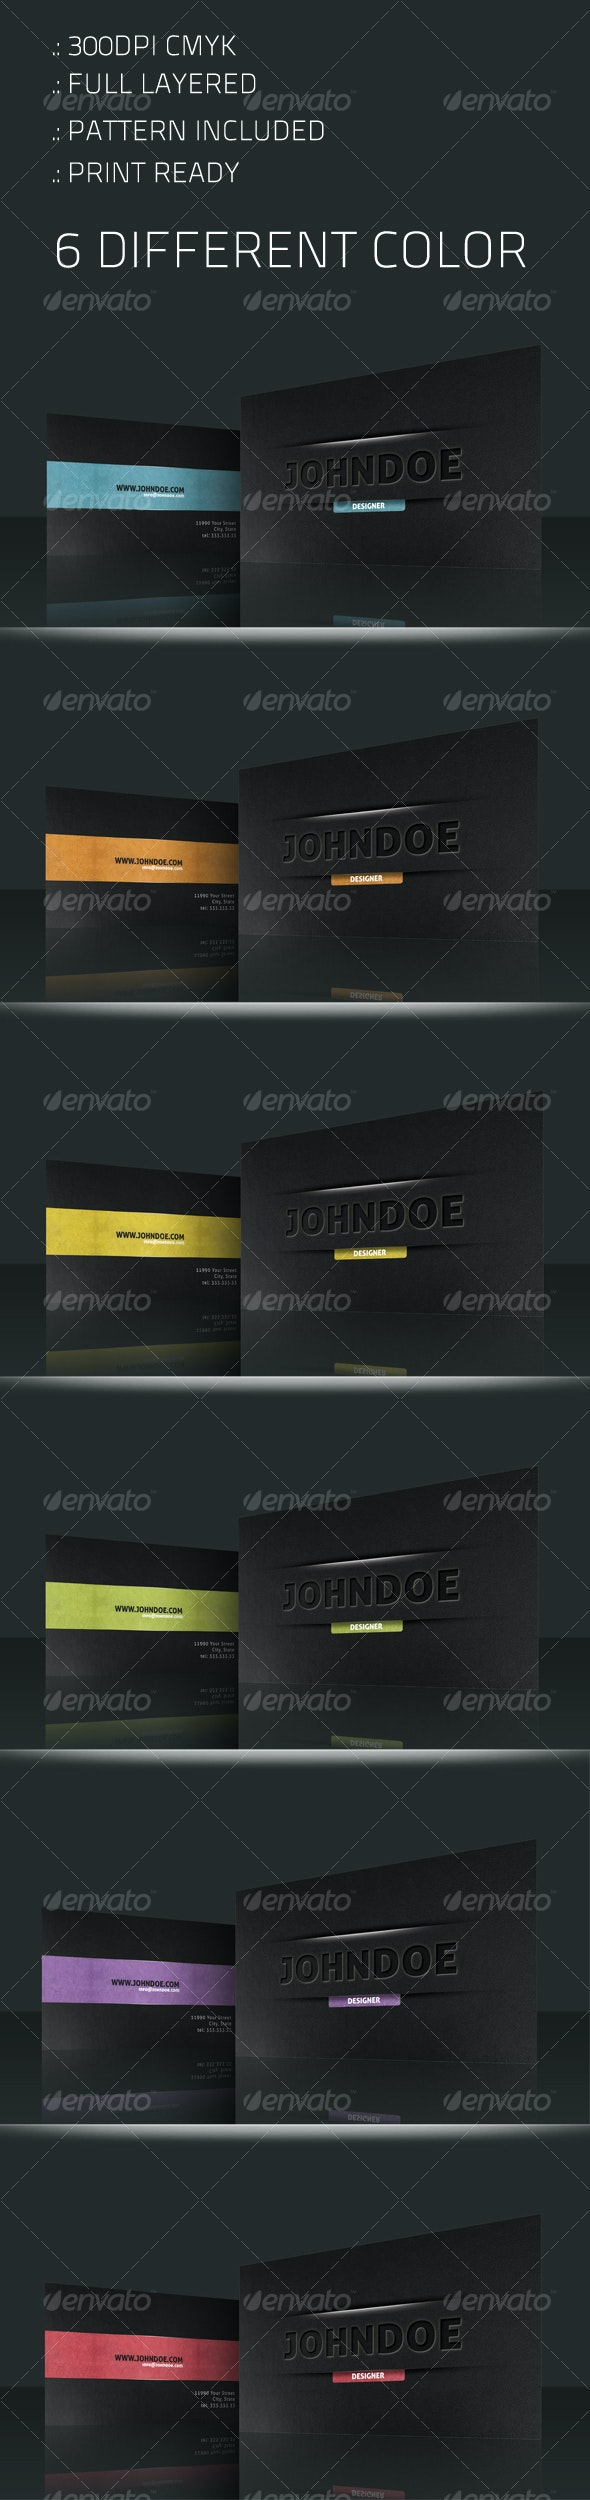 Concept Vision Business Card - Corporate Business Cards